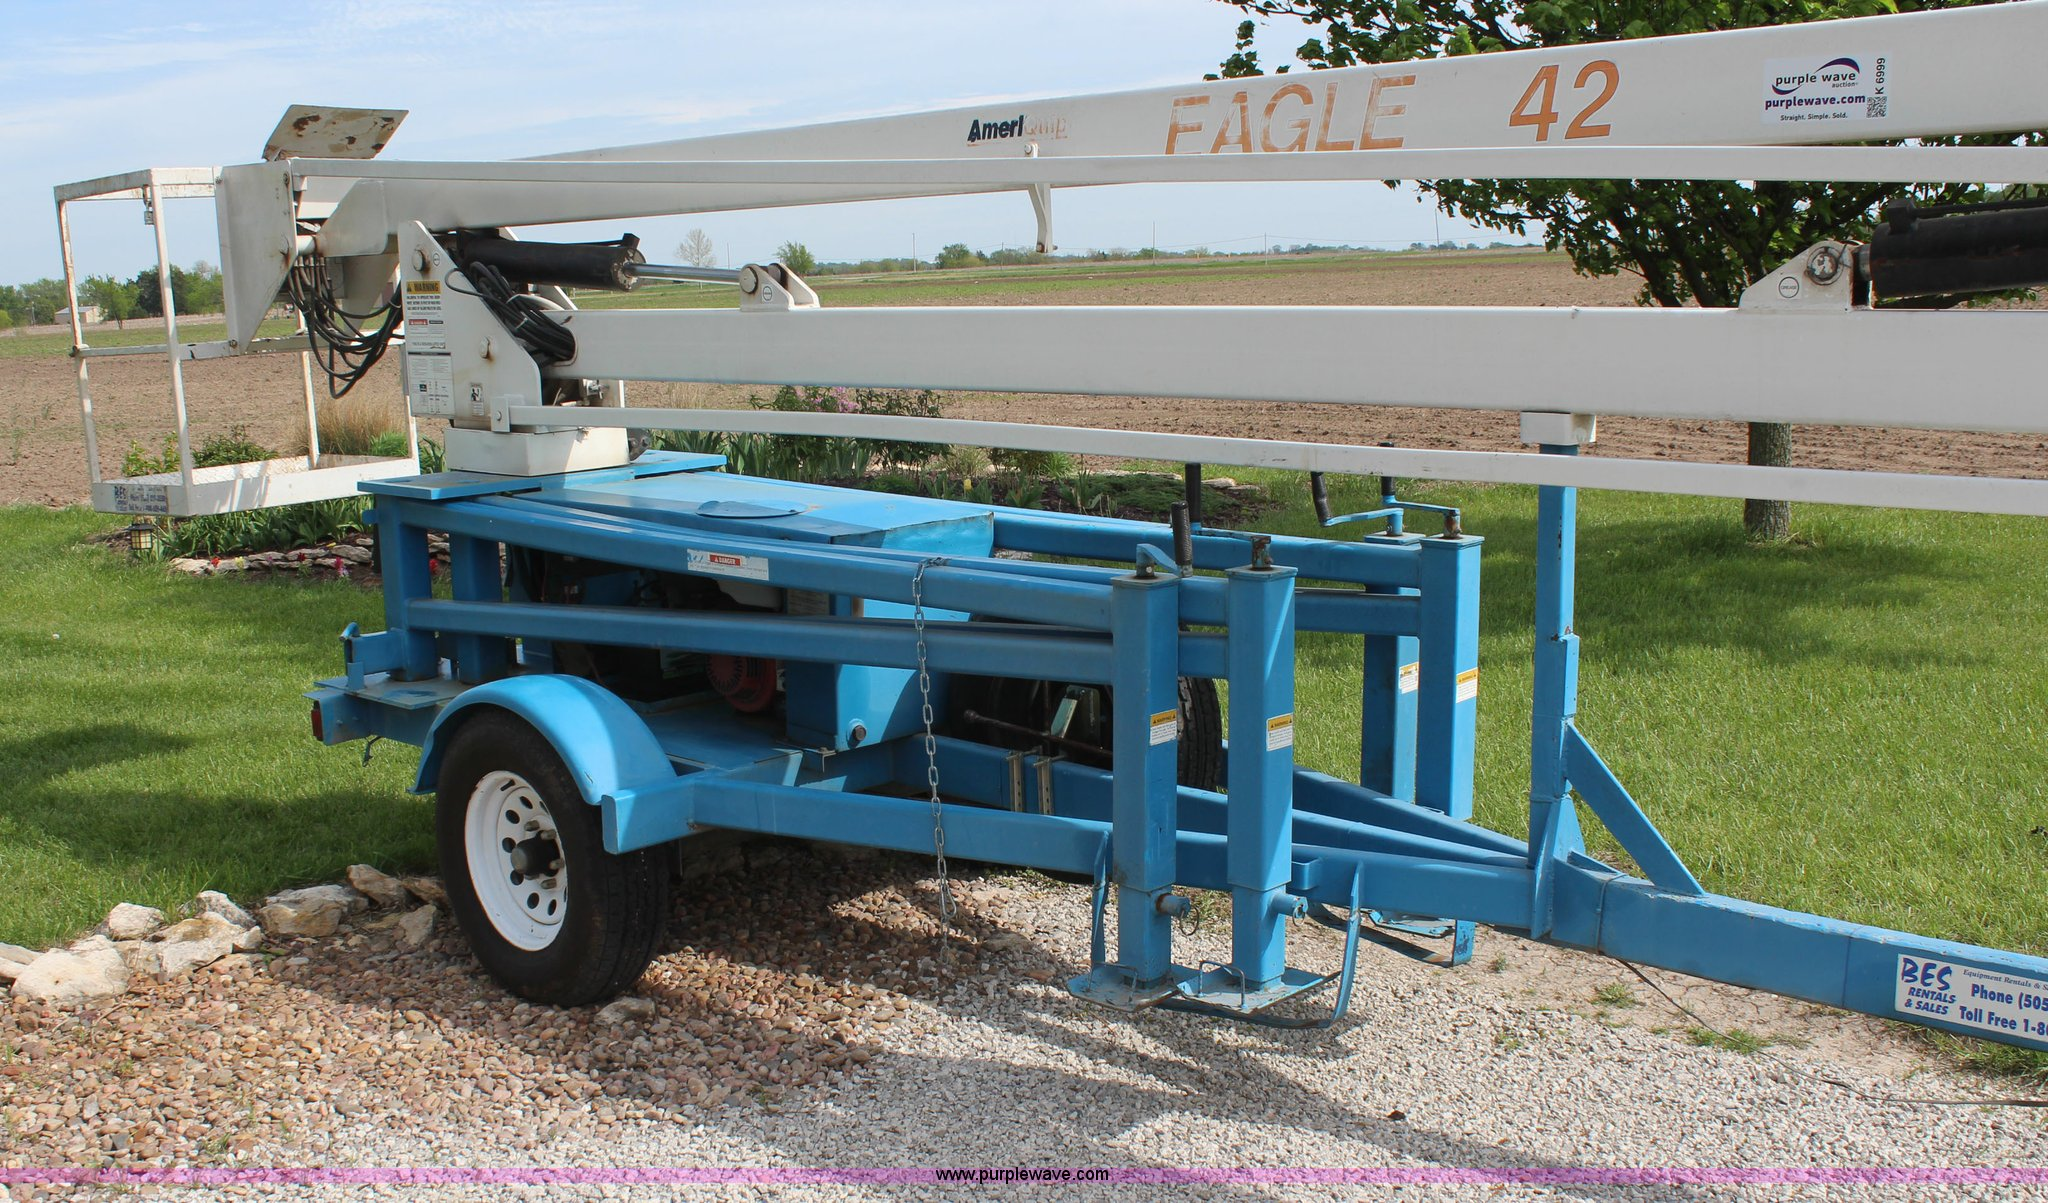 1999 Ameriquip Eagle 42 towable boom lift | Item K6999 | SOL